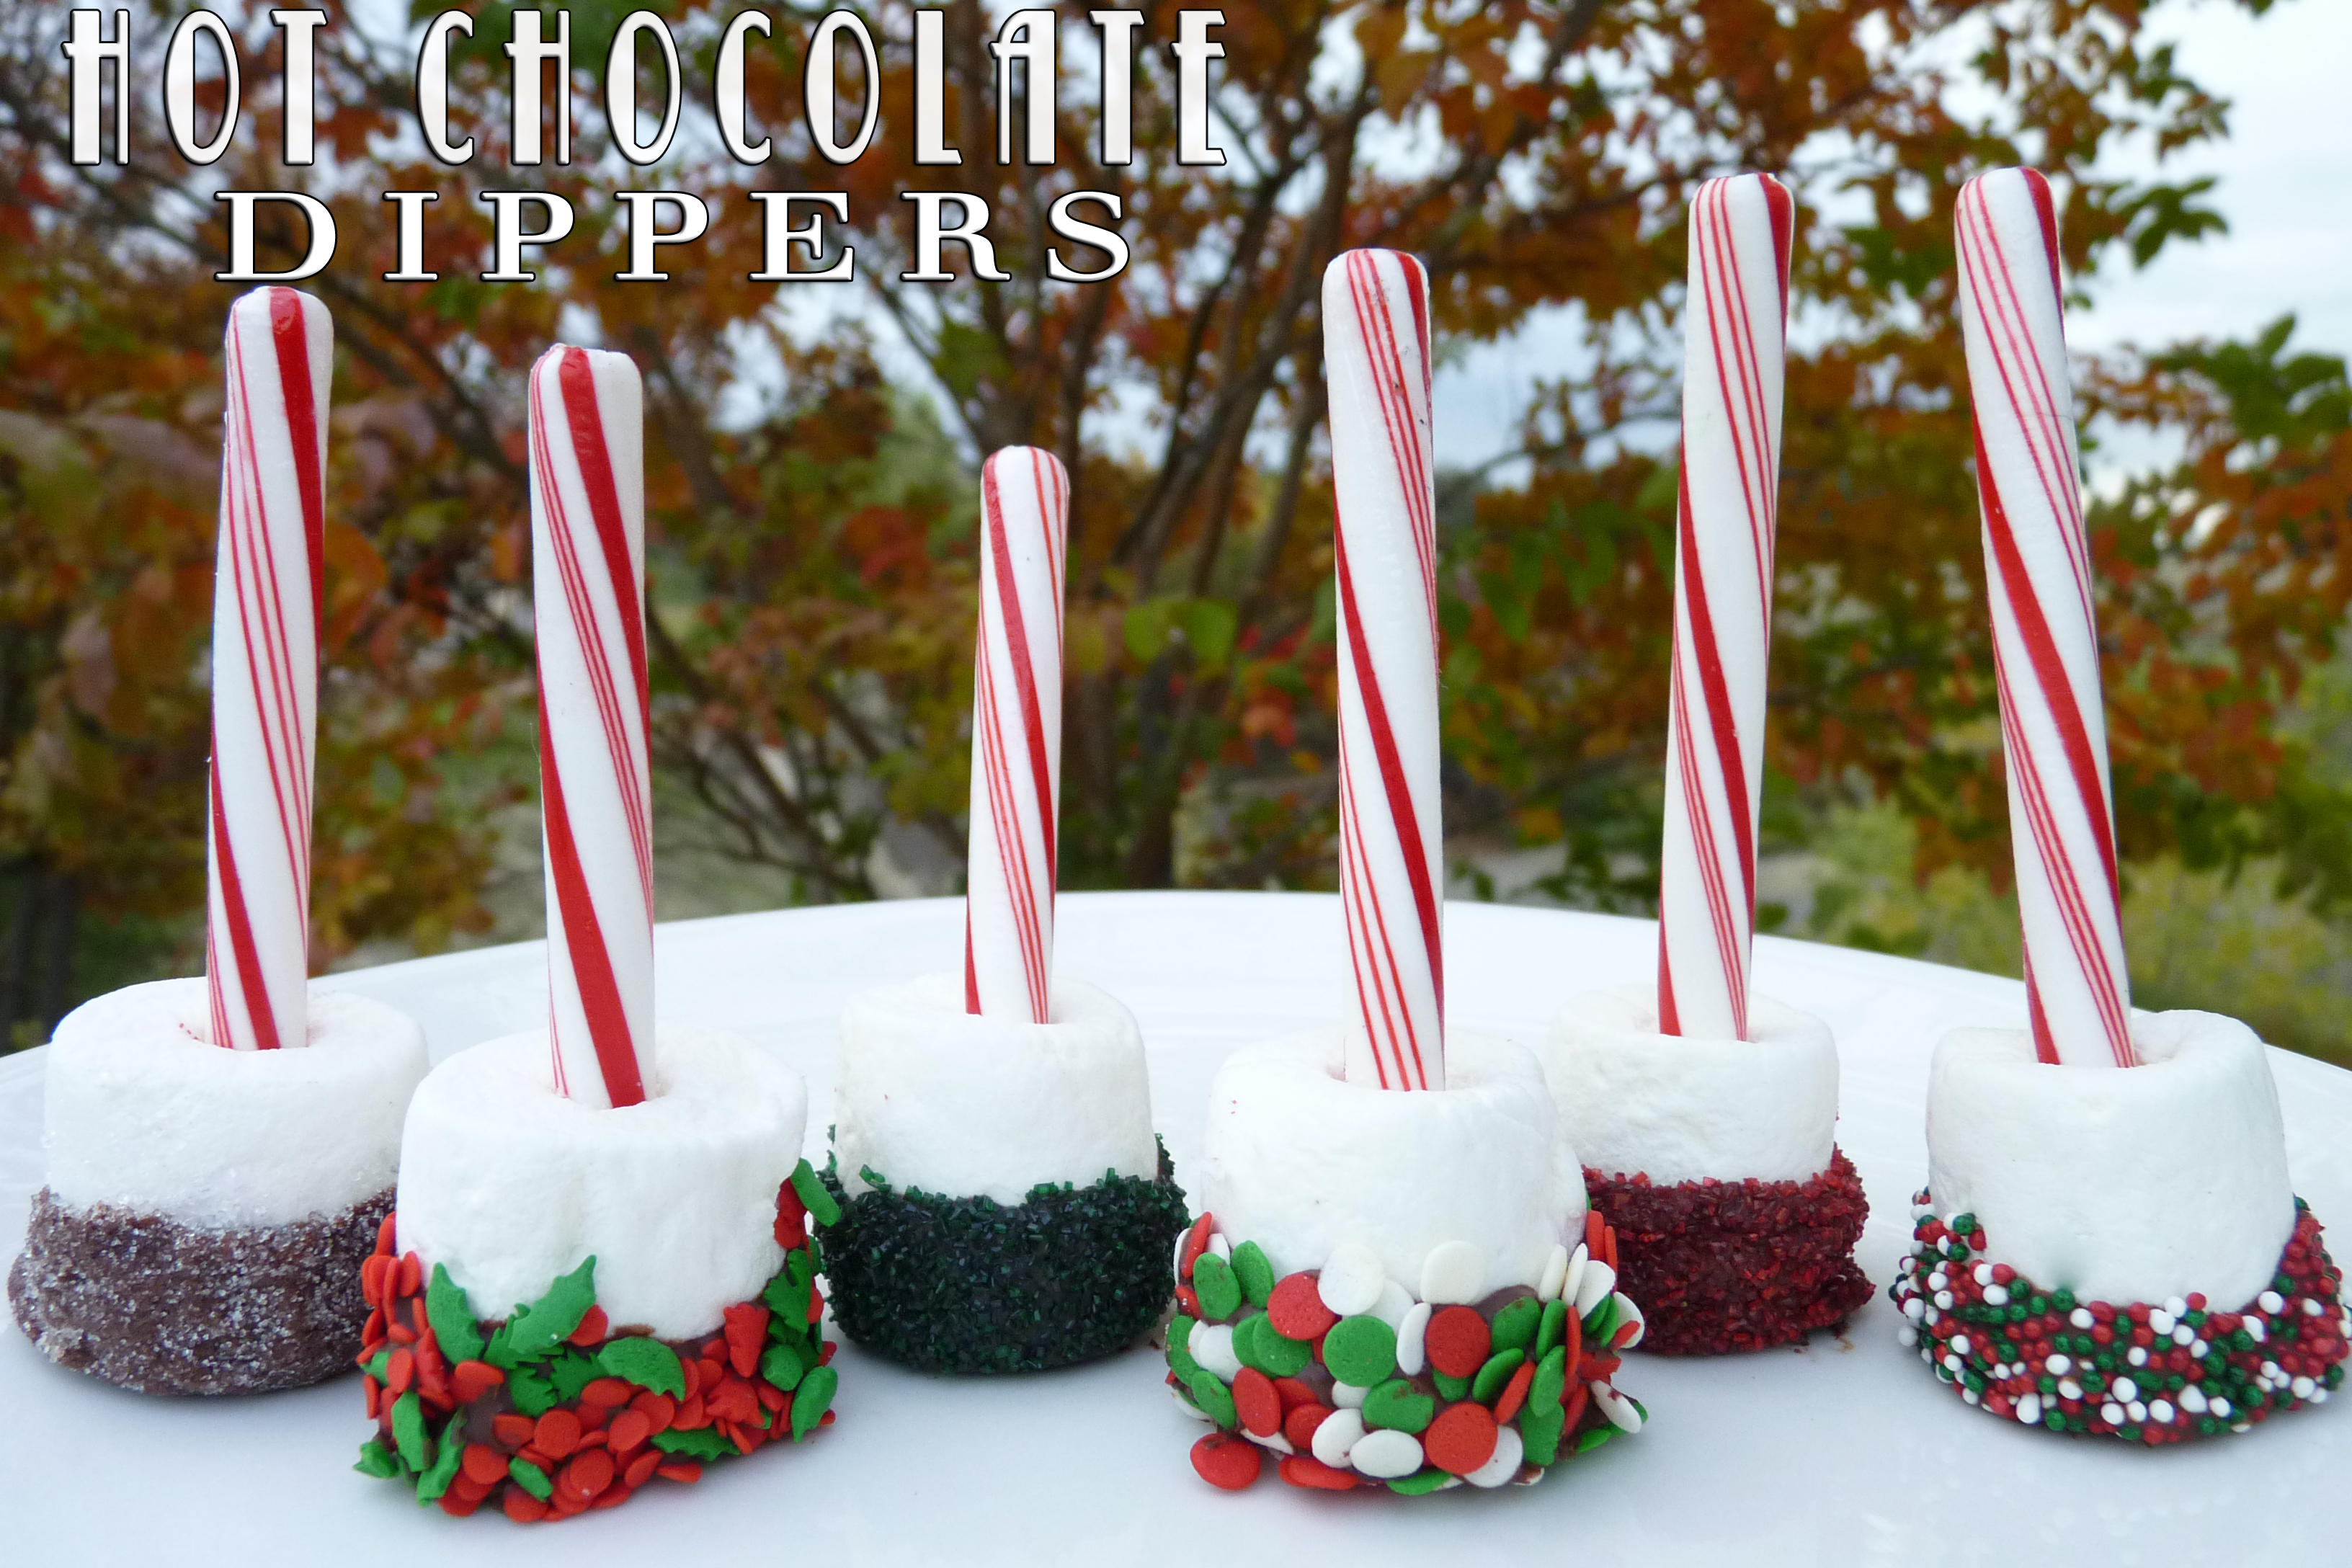 Hot Chocolate Dippers